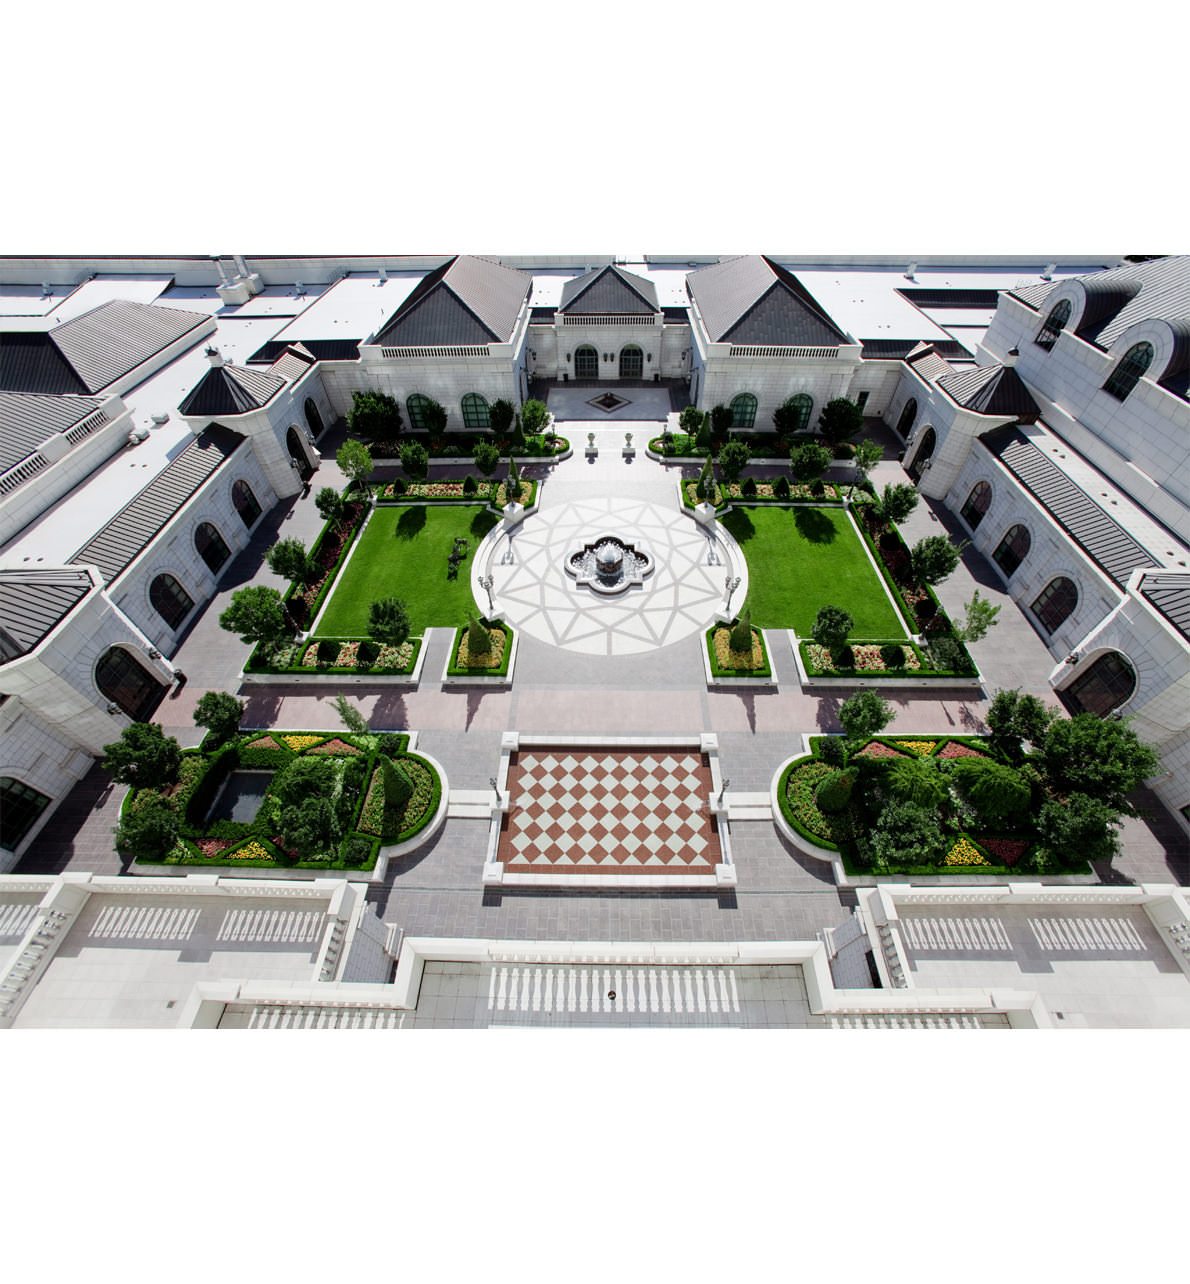 Aerial view of the Garden Courtyard at The Grand America Hotel, featuring green manicured lawns, flower beds and reception space